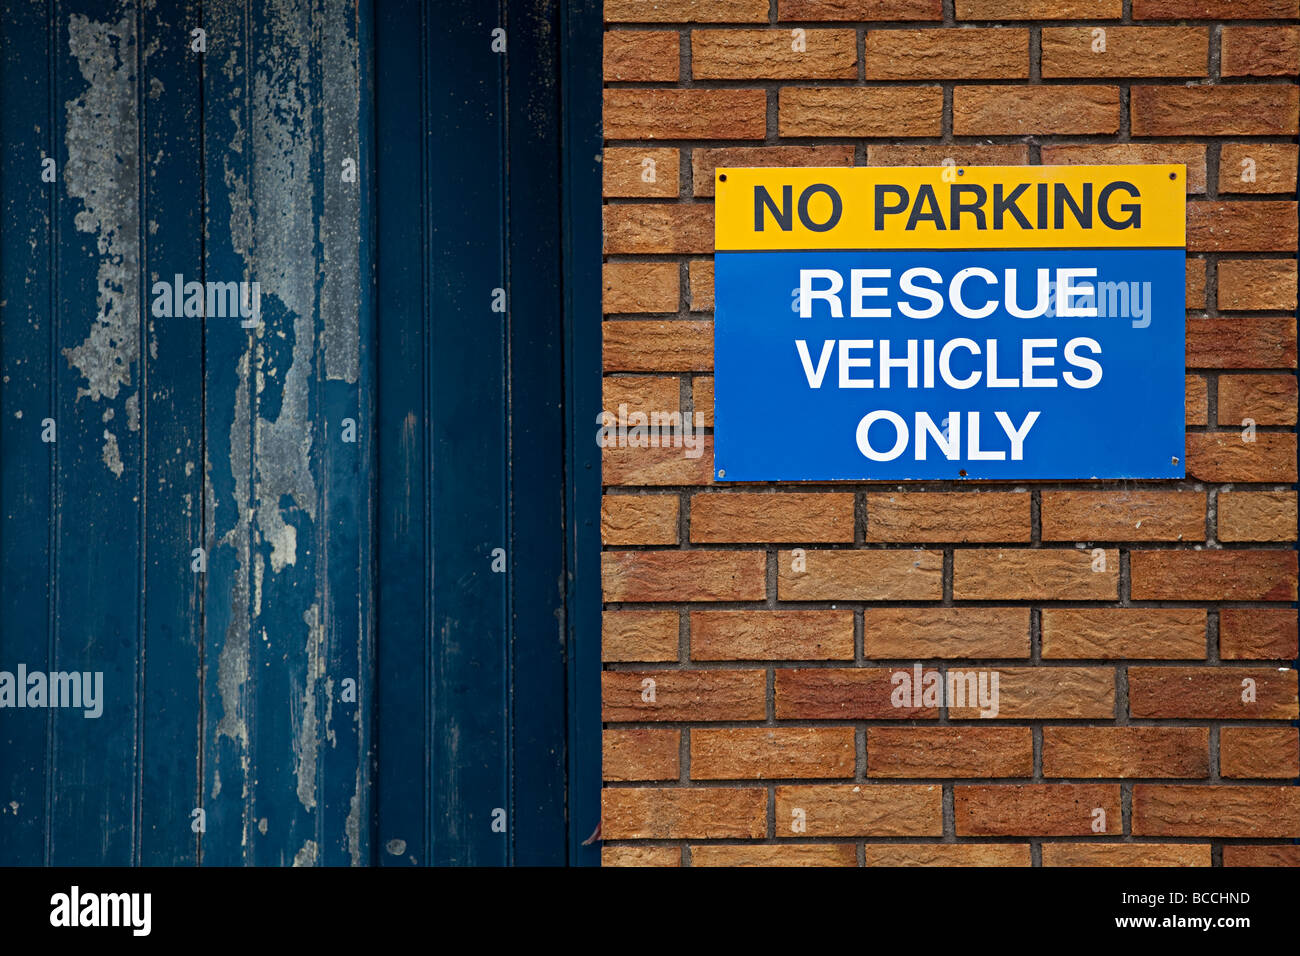 No parking rescue vehicles only sign on brick wall next to faded paint garage door Barry Wales UK - Stock Image